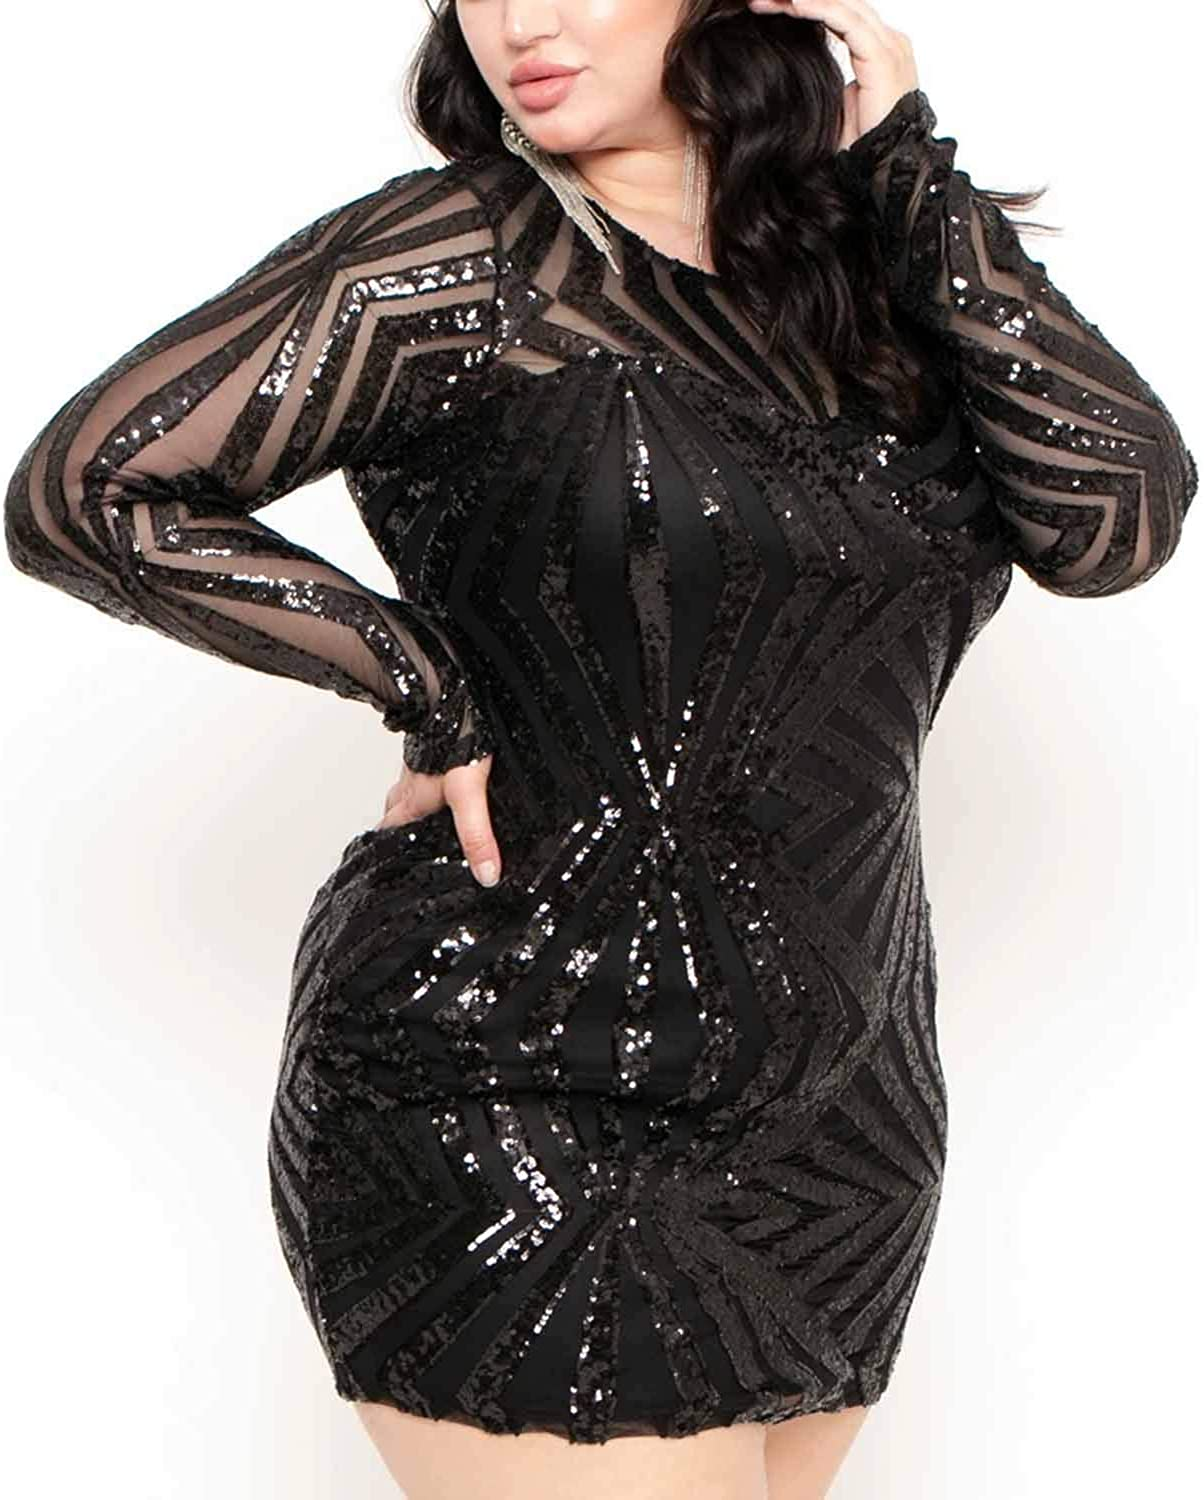 Bbrand Women's Sequin Plus Size Long Sleeve Mesh See Through Bodycon Party Club Mini Dress